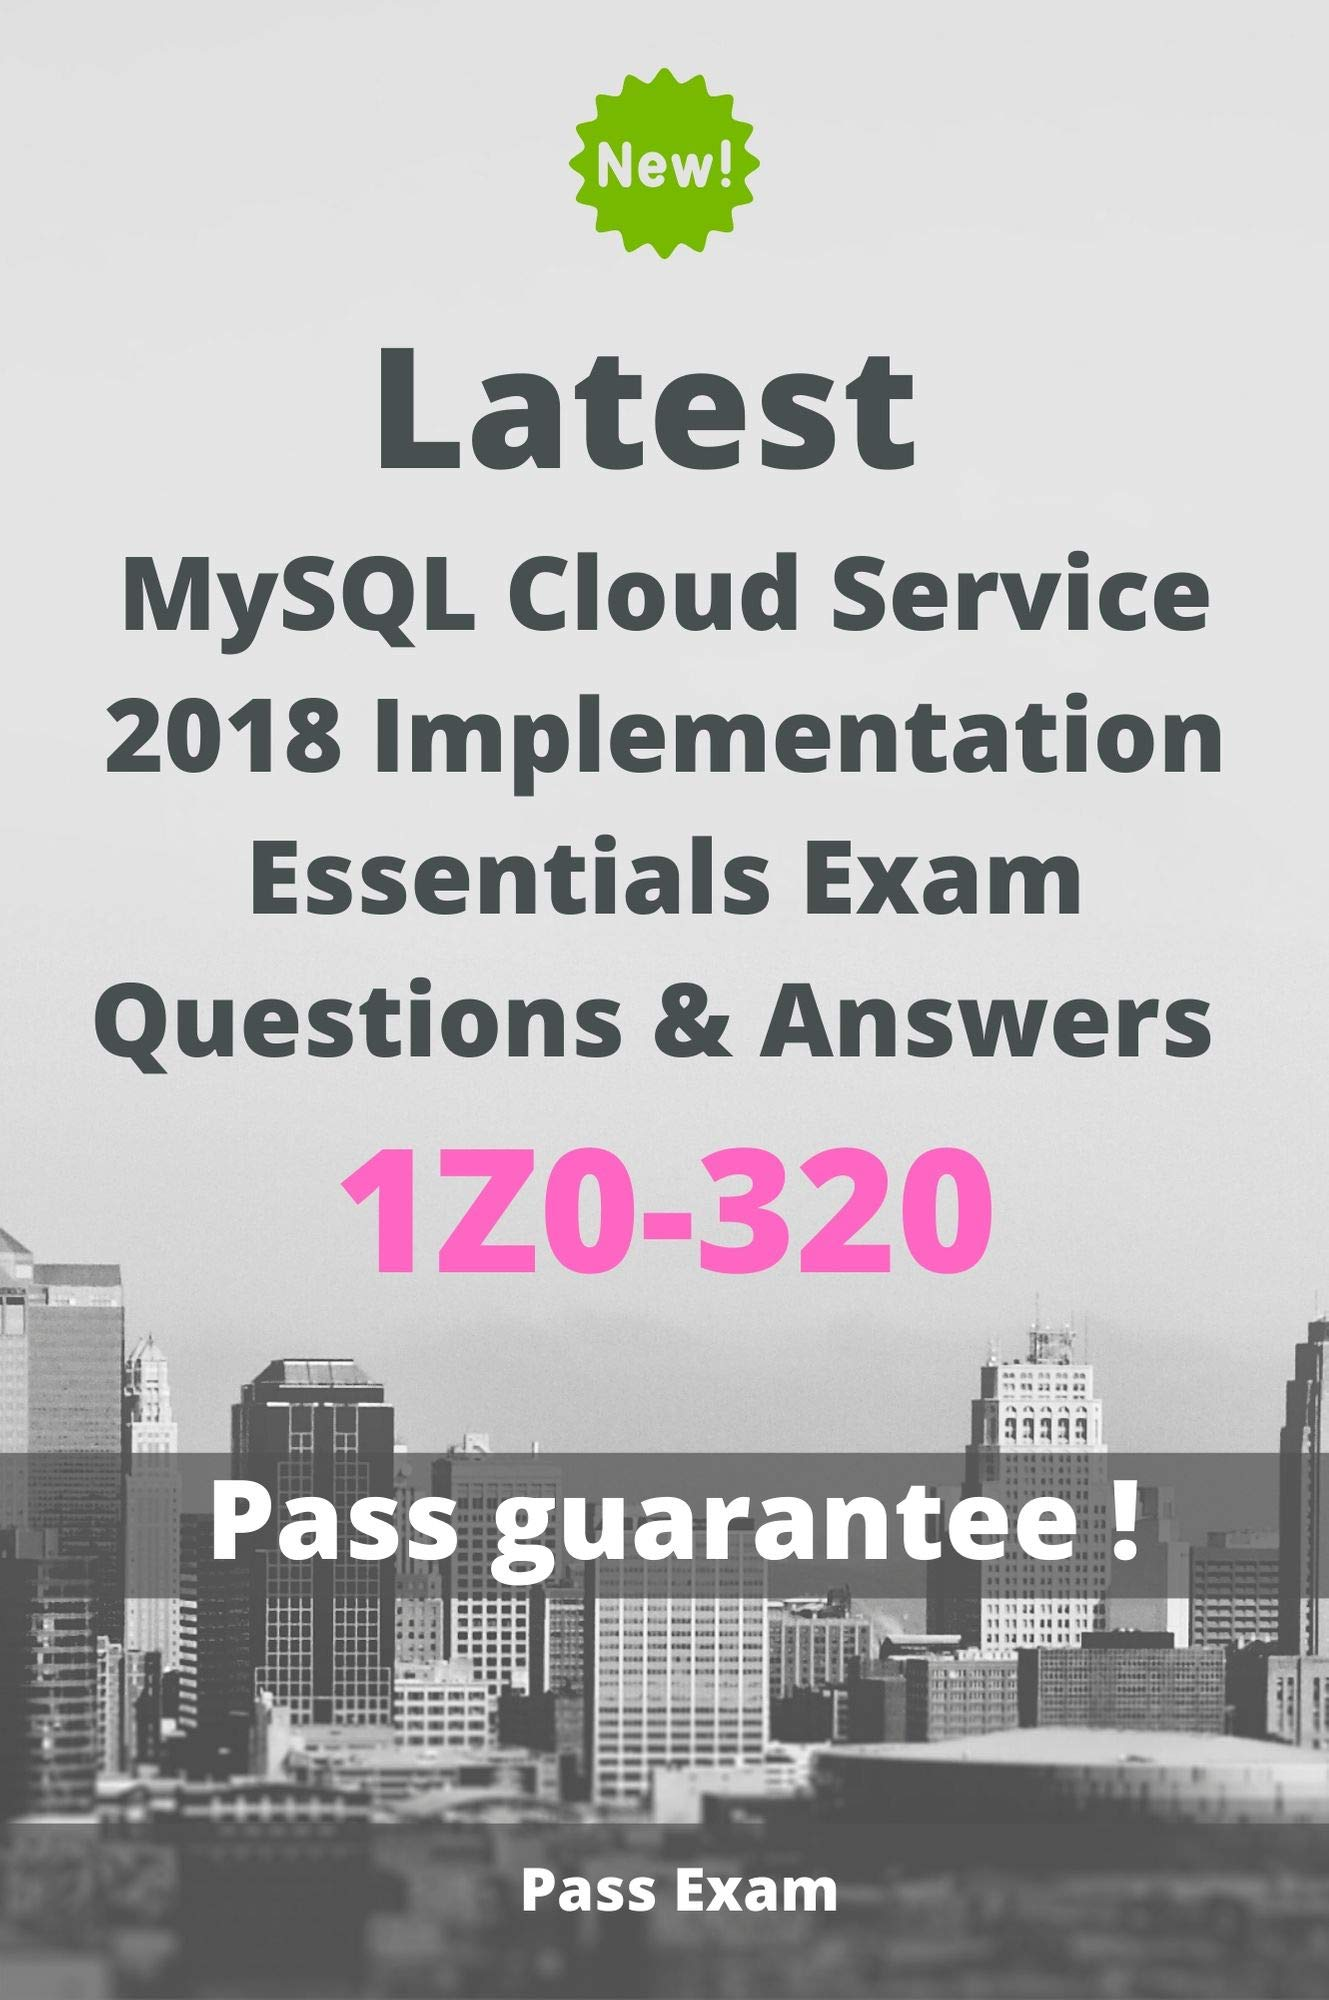 Latest MySQL Cloud Service 2018 Implementation Essentials Exam 1Z0-320 Questions and Answers: Guide for Real Exam